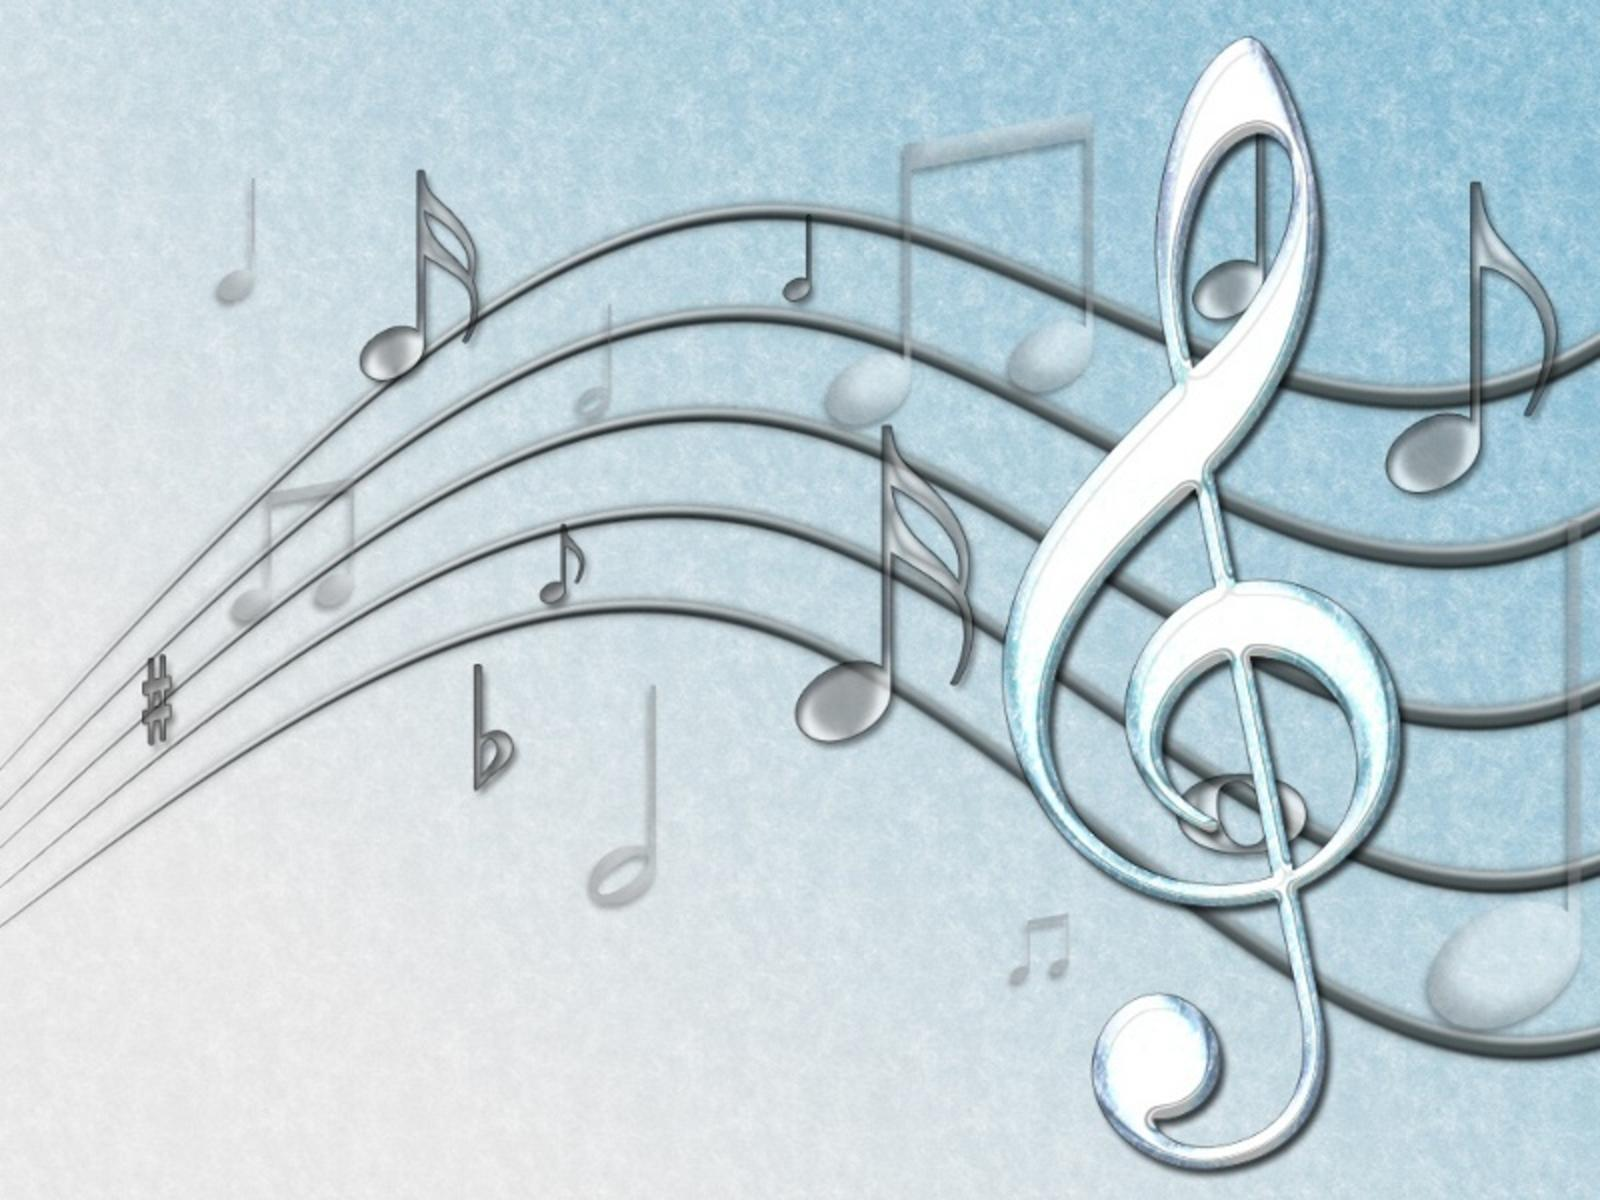 Music Note Desktop Backgrounds Hd 1080P 11 HD Wallpapers